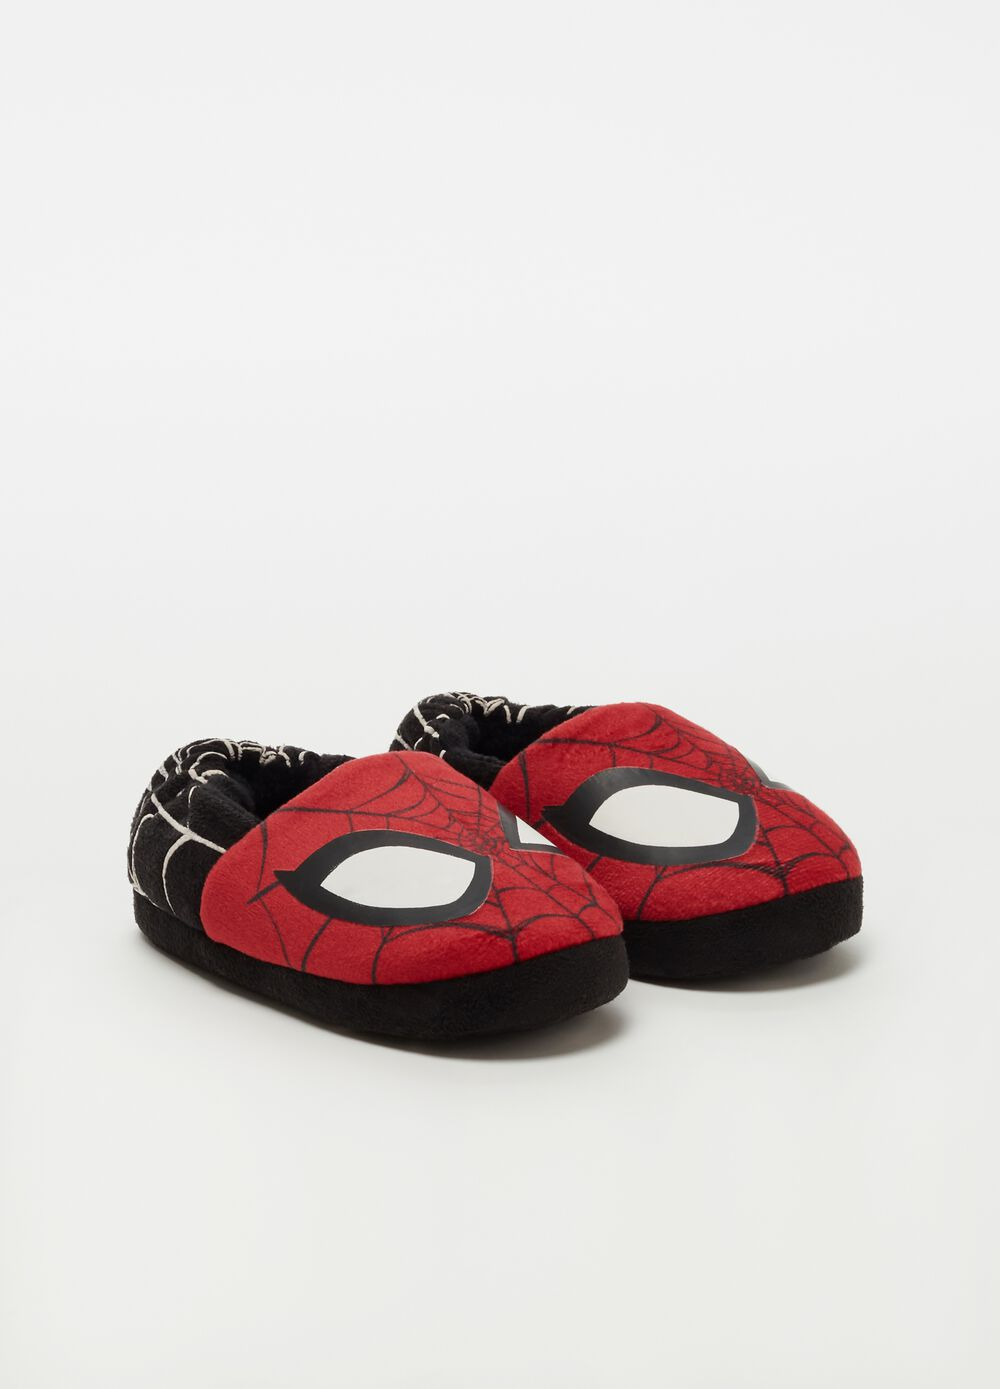 Slippers with Marvel Spider-Man pattern